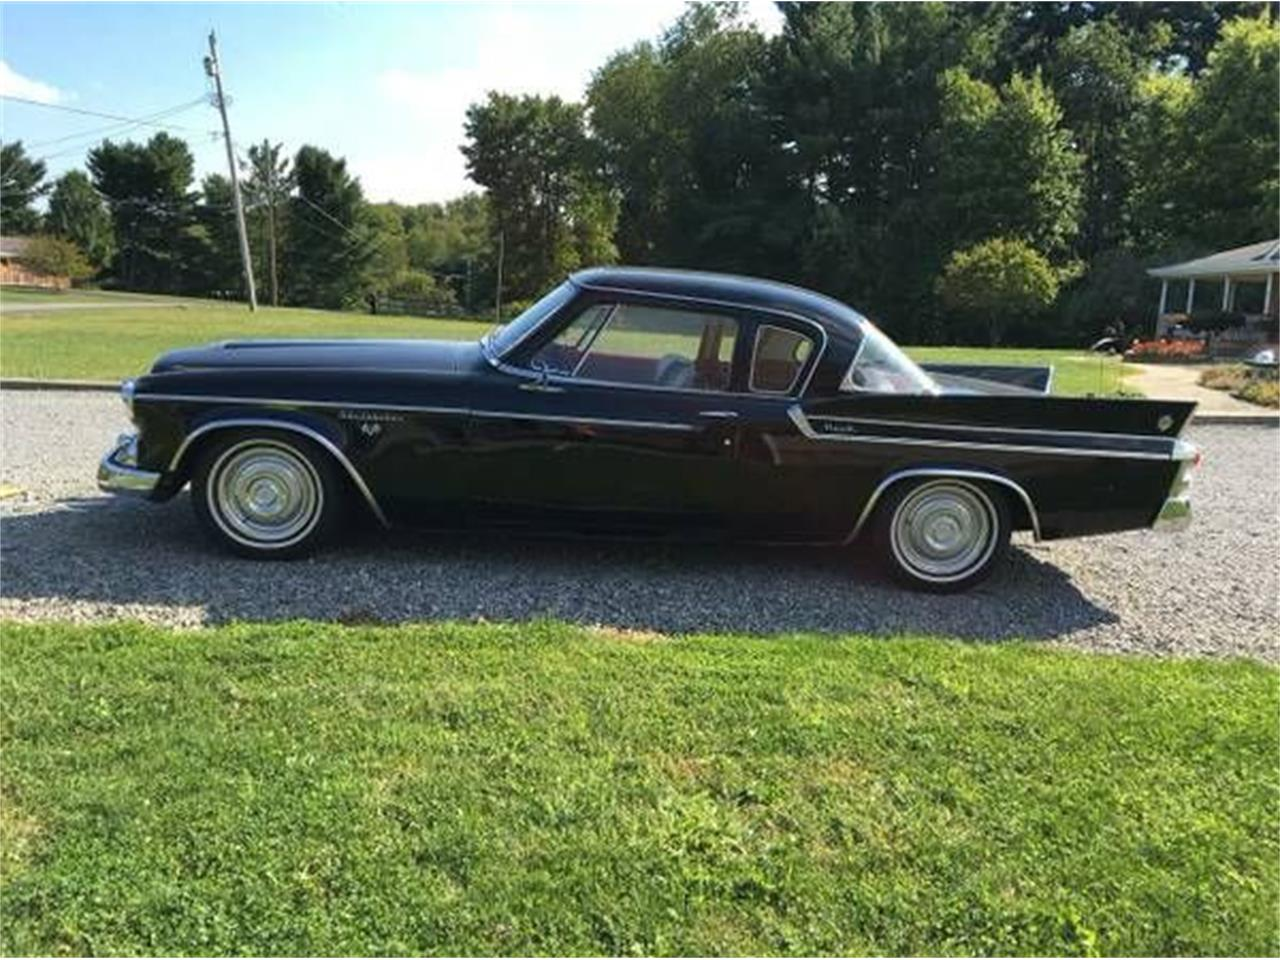 1961 Studebaker Hawk for Sale   ClassicCars com   CC 1075006 Large Picture of  61 Hawk    18 995 00 Offered by Classic Car Deals   N1HA